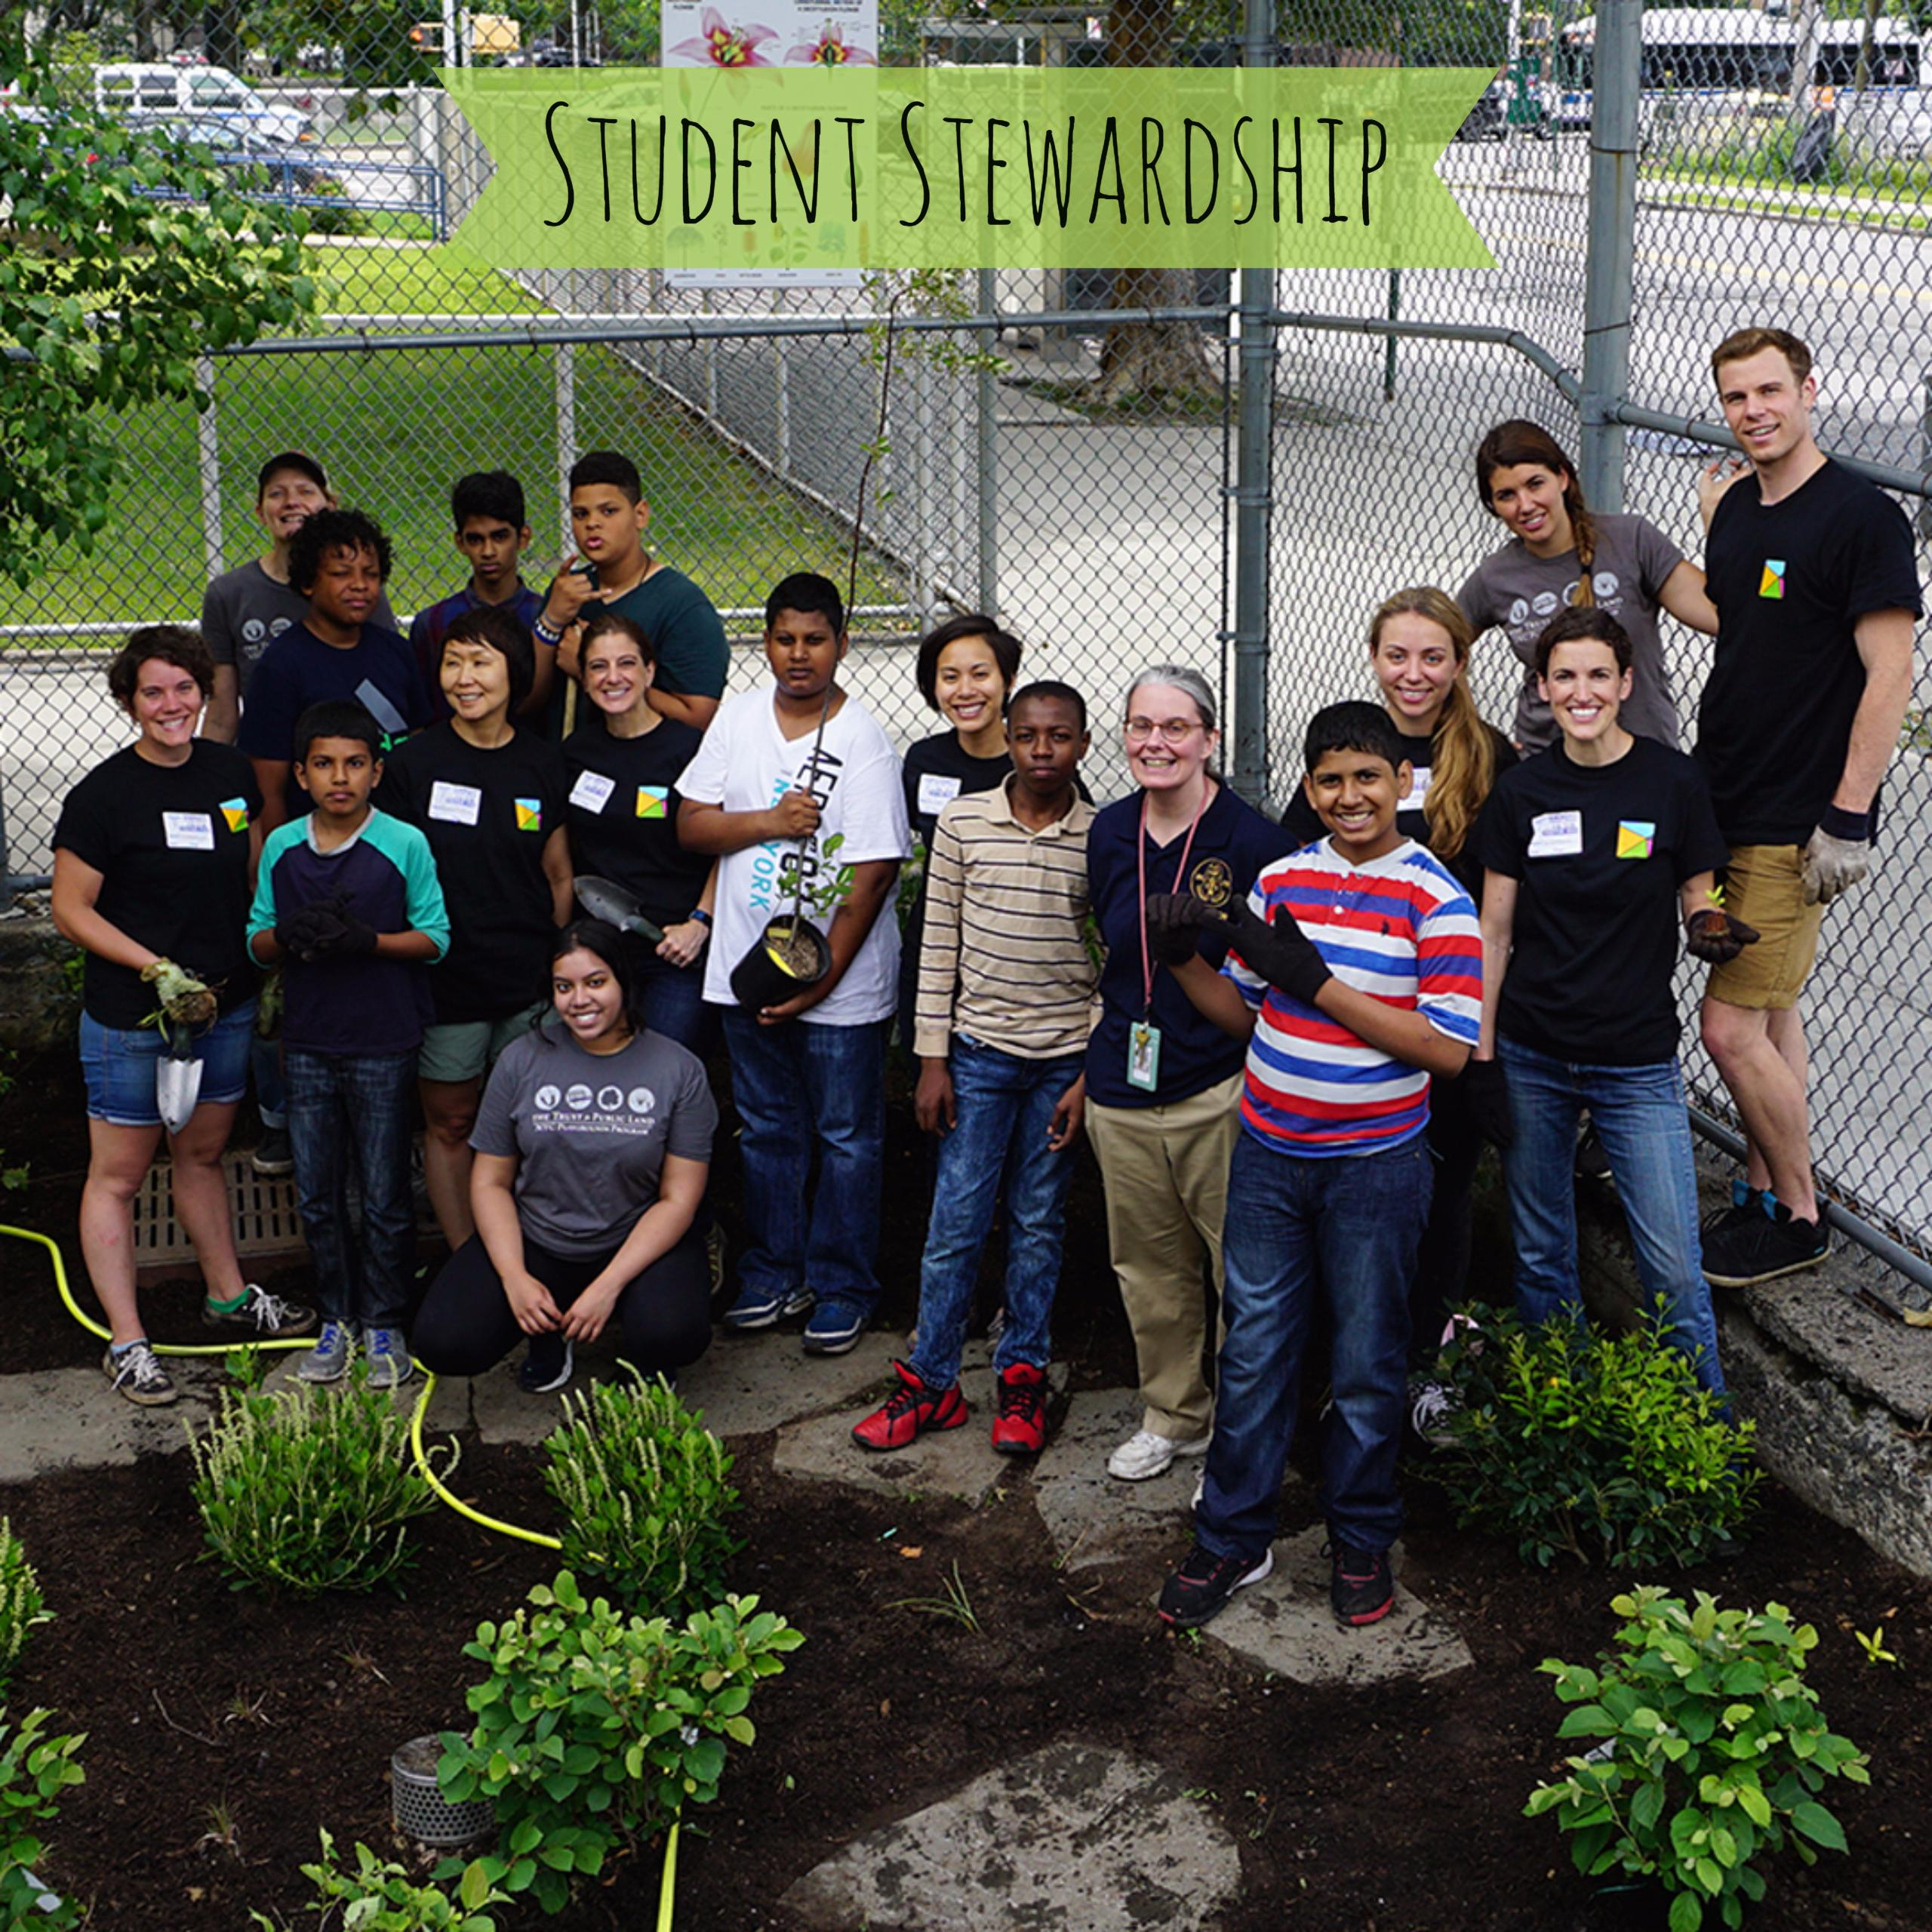 Our Student Stewardship Team